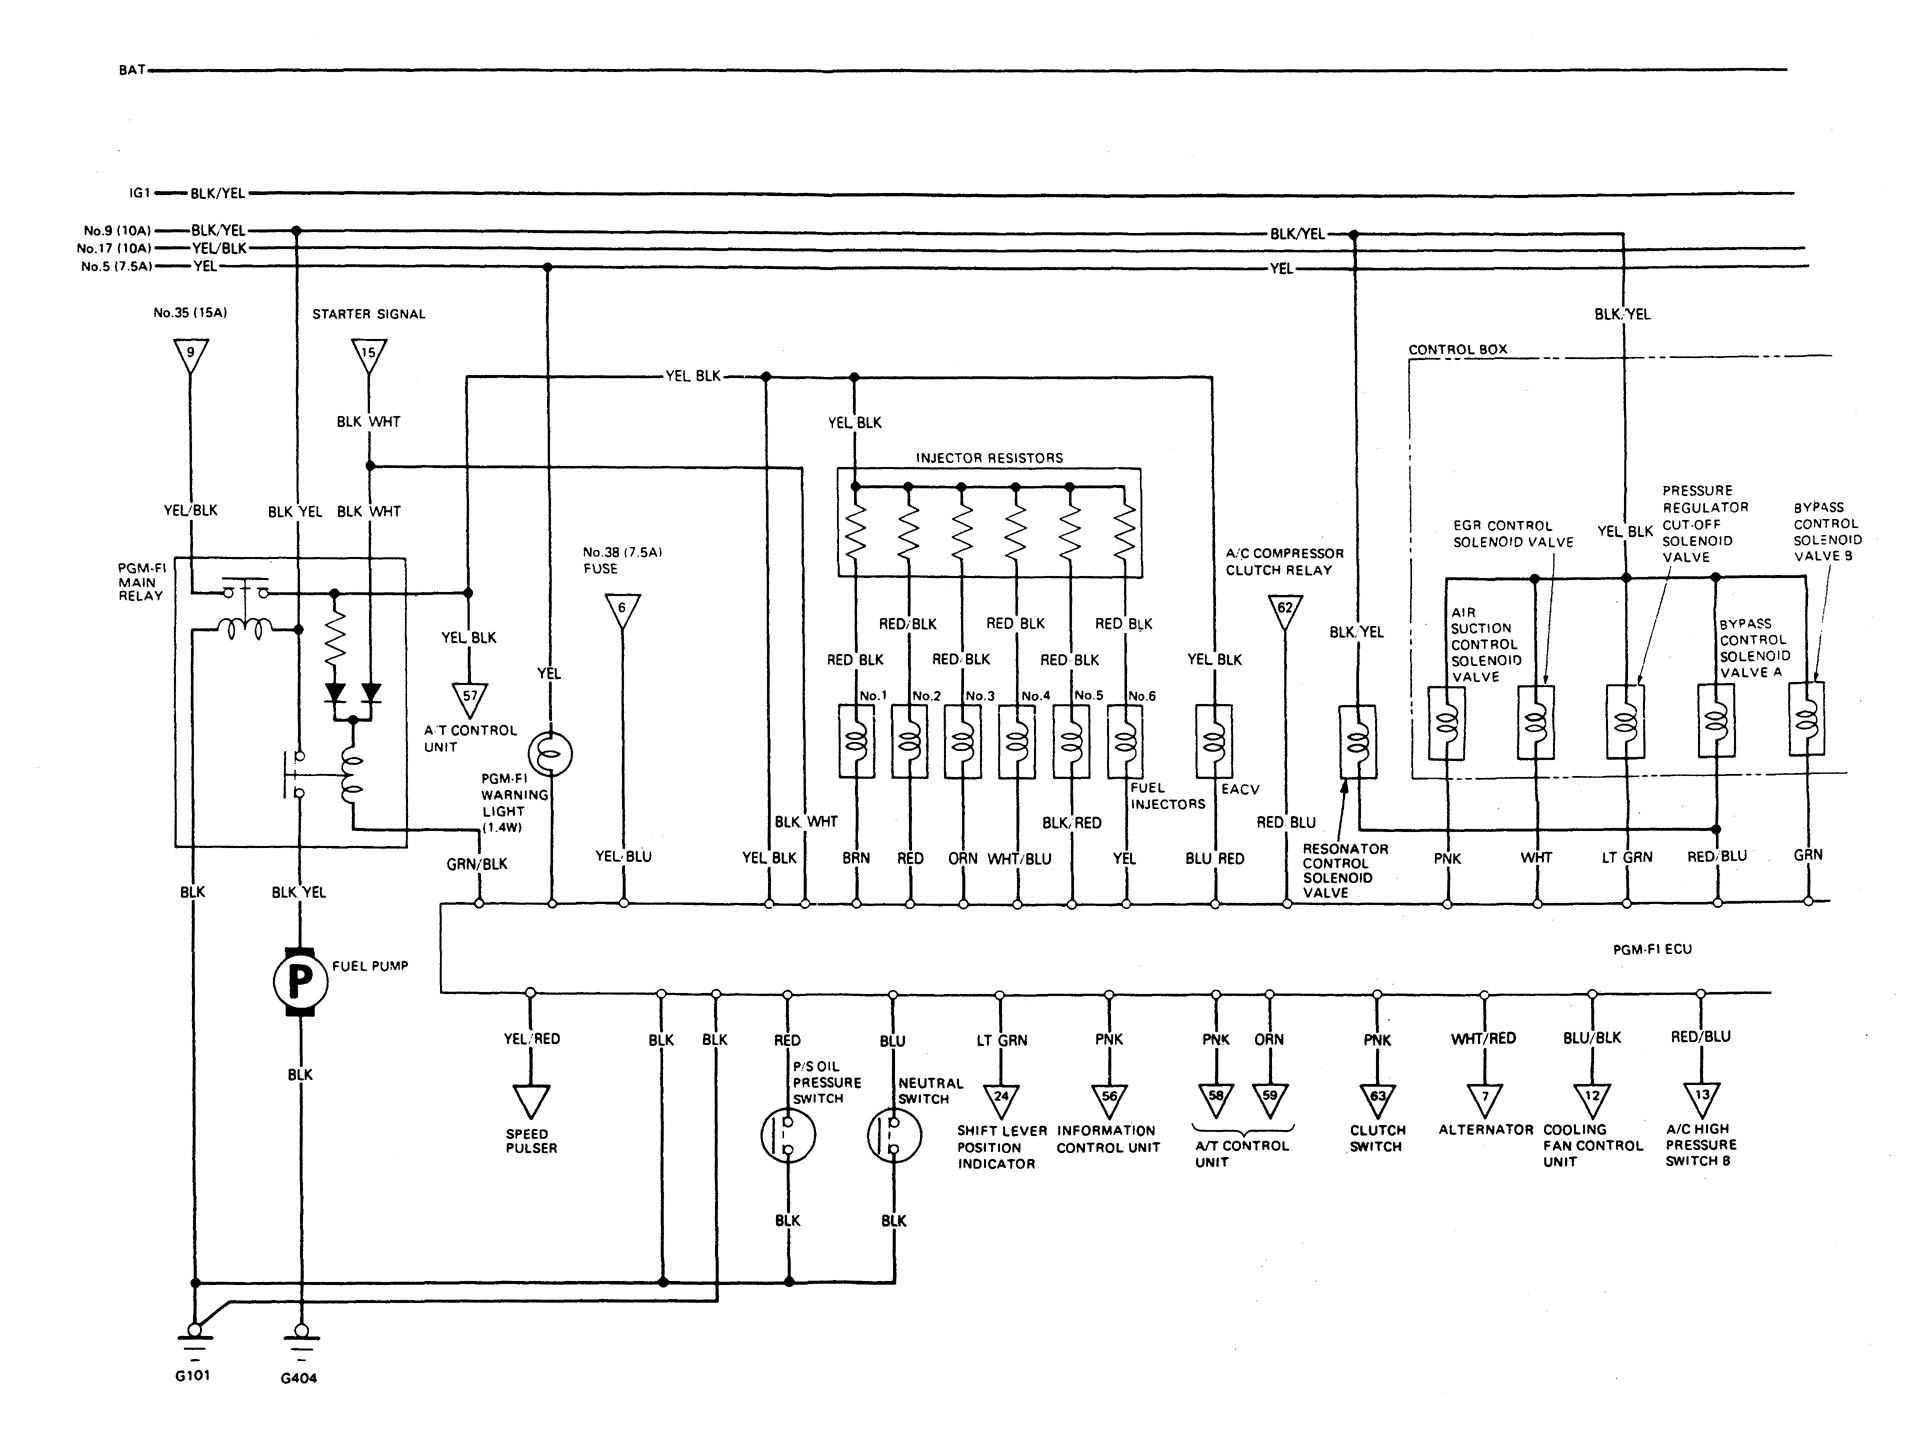 89 Acura Legend Wiring Diagram Trusted Diagrams 1989 Integra Ac System Computer Data Lines Carknowledge Winnebago